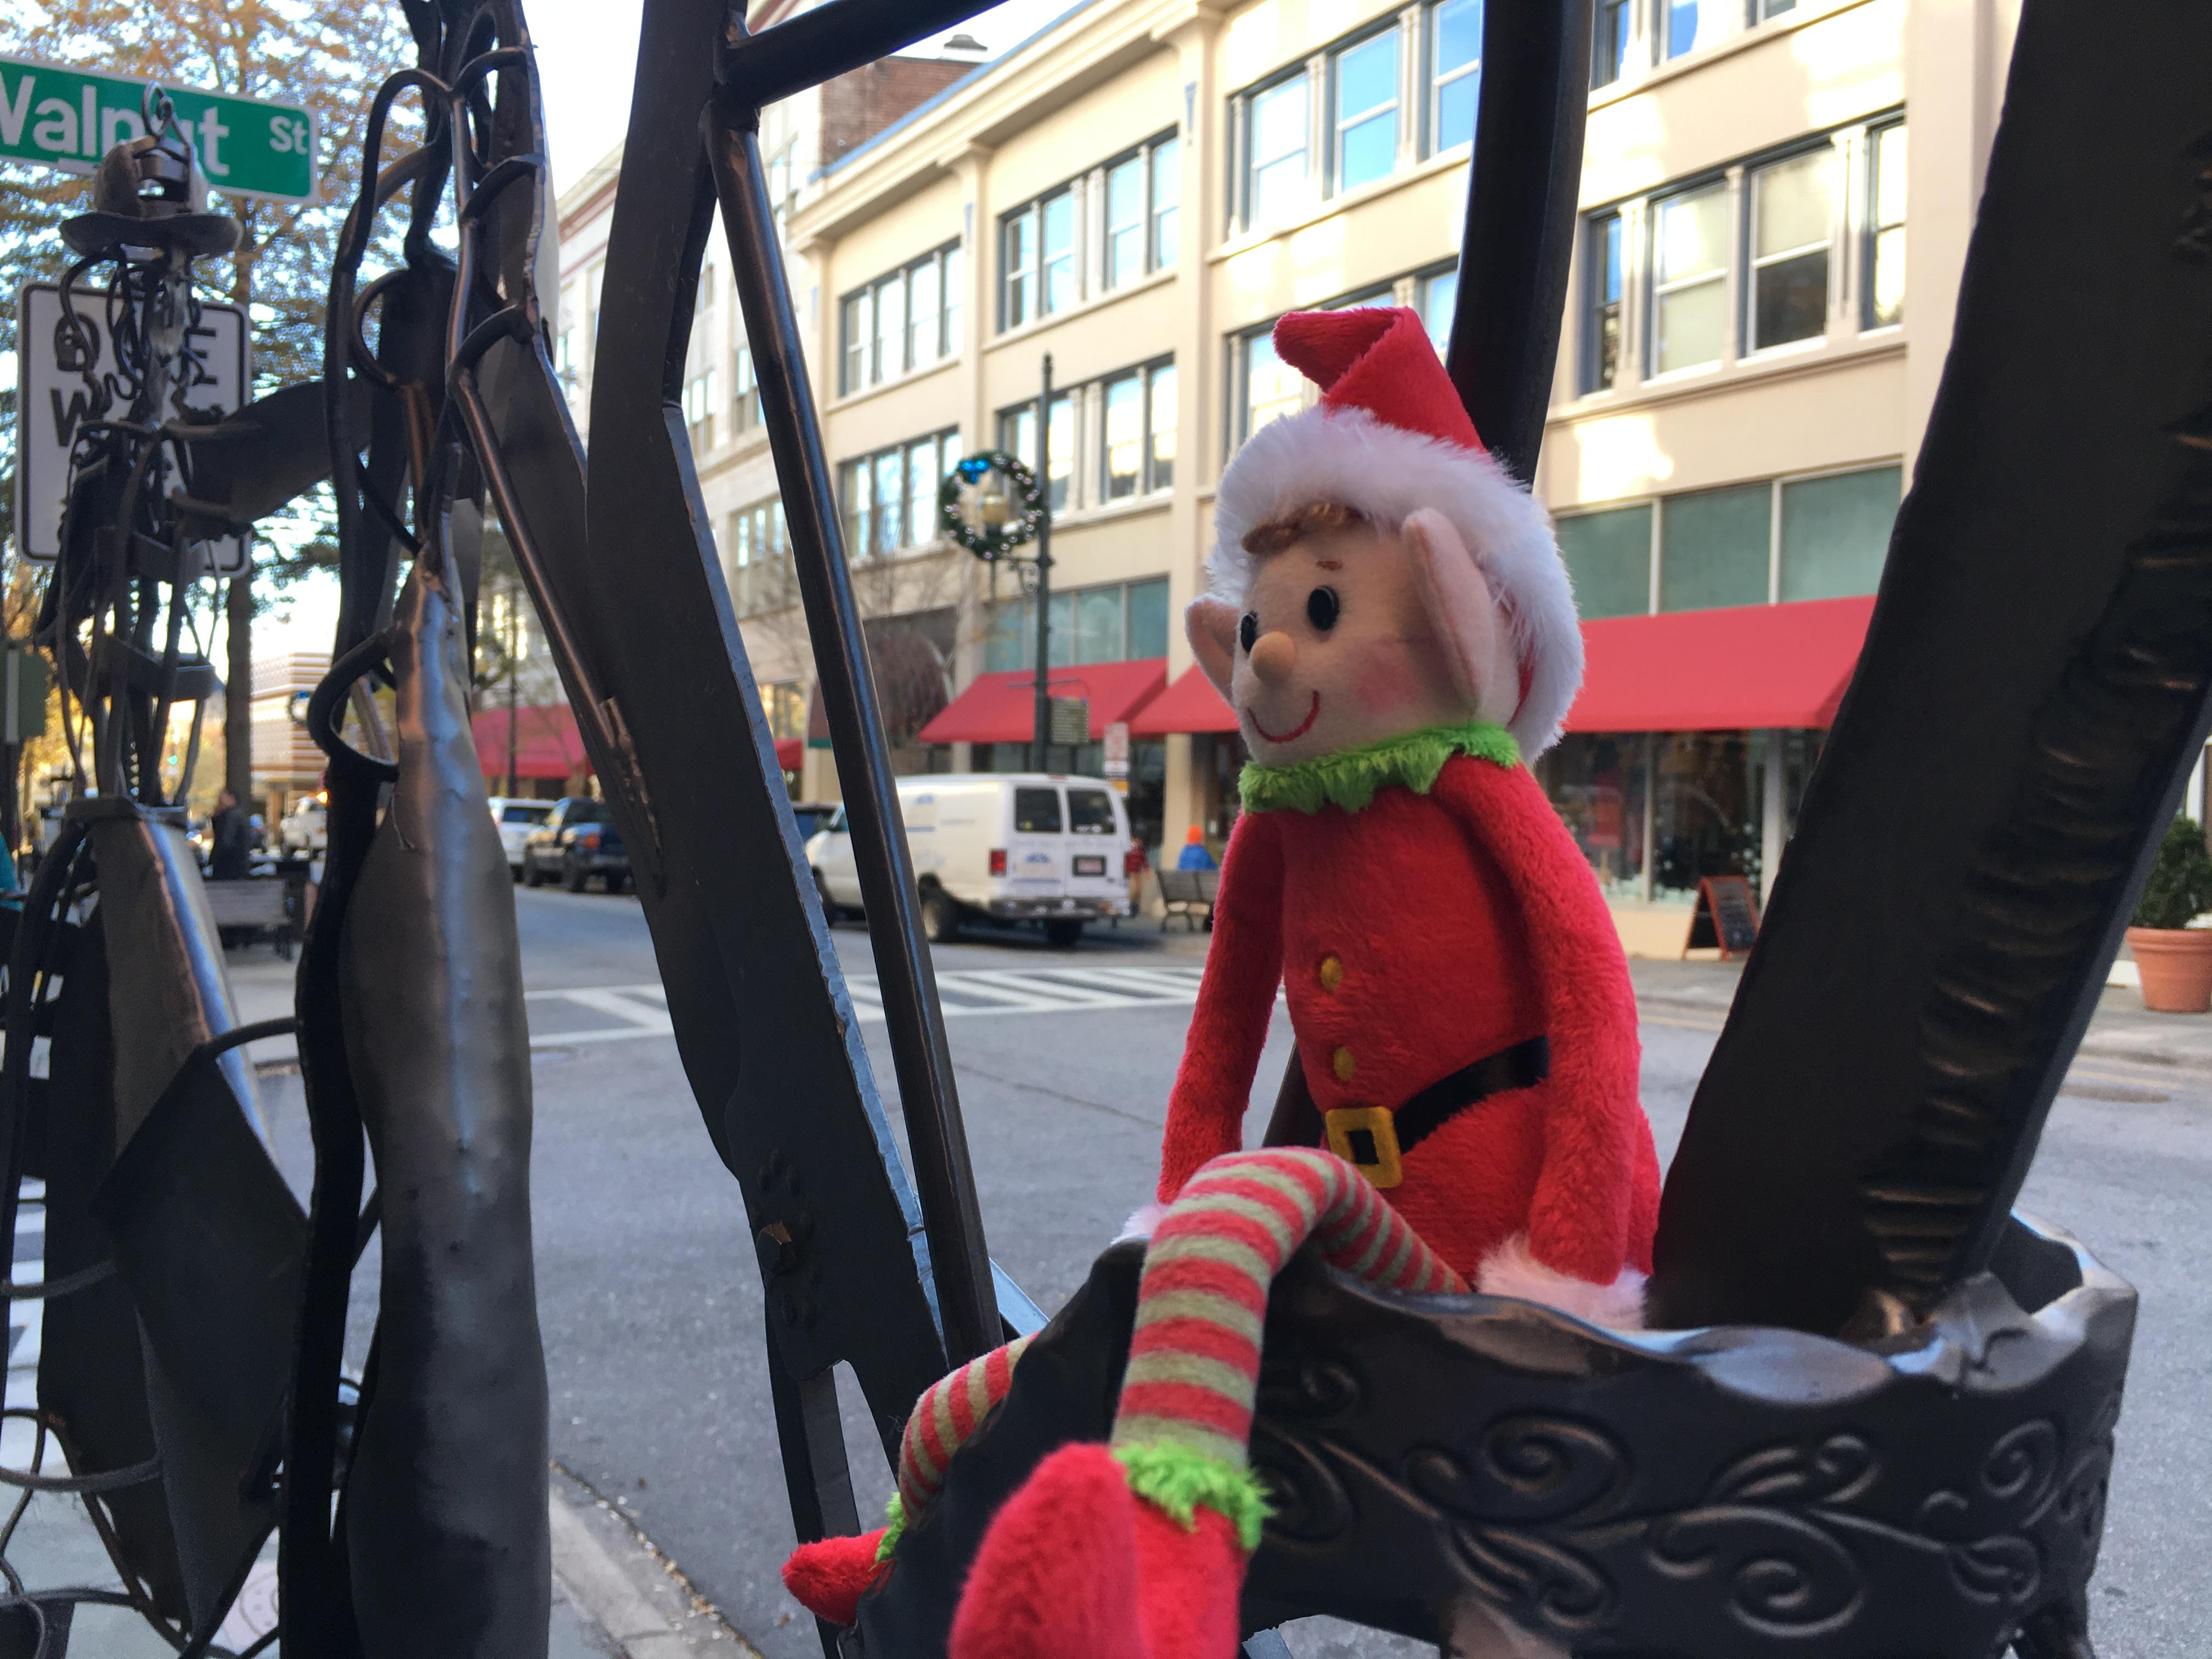 Scoop, News 13's elf, tags along with crews all over western North Carolina, testing viewer's local knowledge. (Photo credit: WLOS Staff)